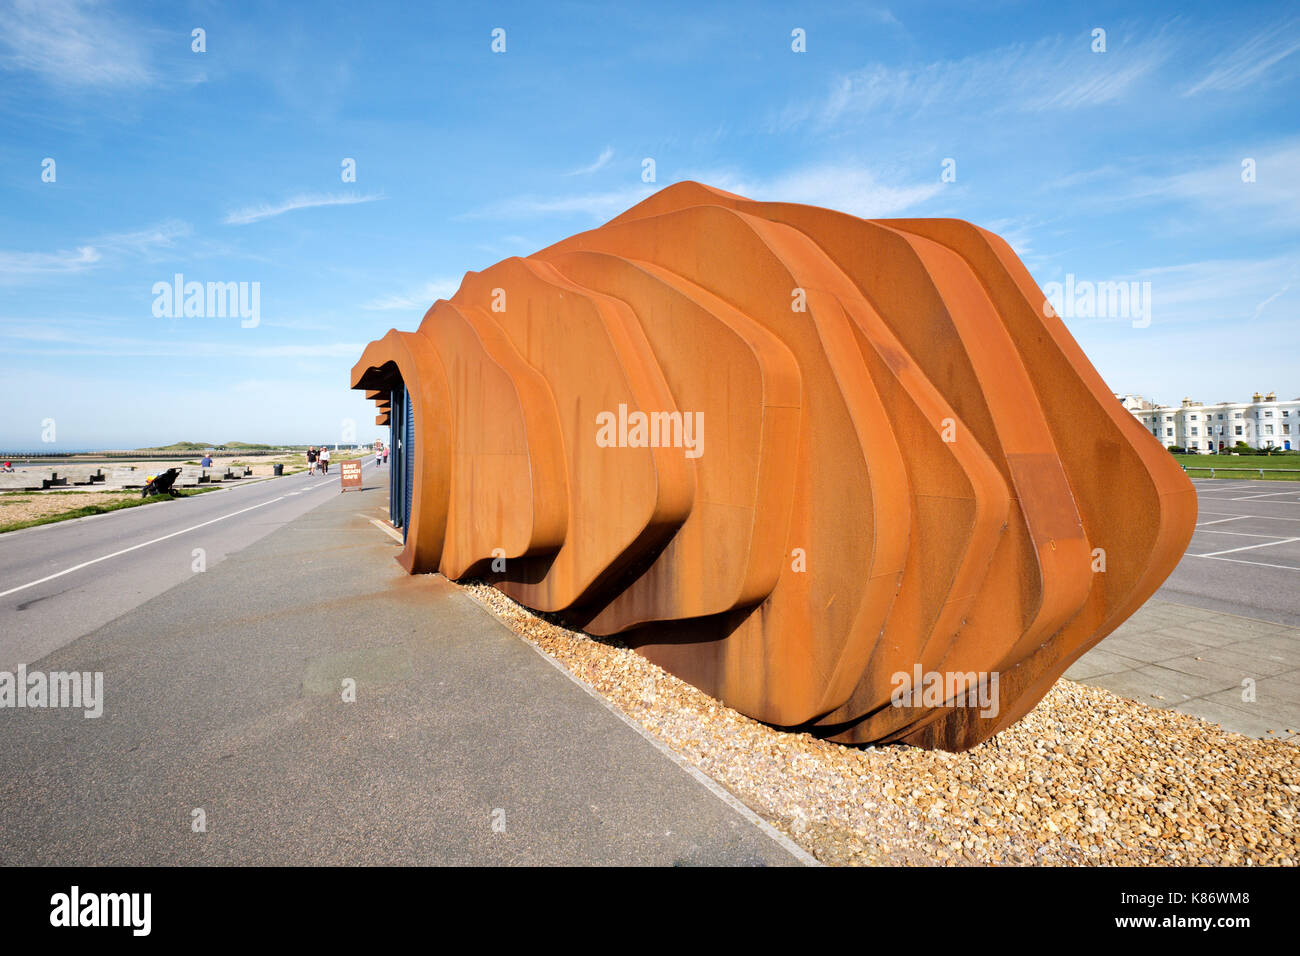 The East Beach cafe in Littlehampton, West Sussex, England is a welded steel monocoque design completed in 2007 - Stock Image